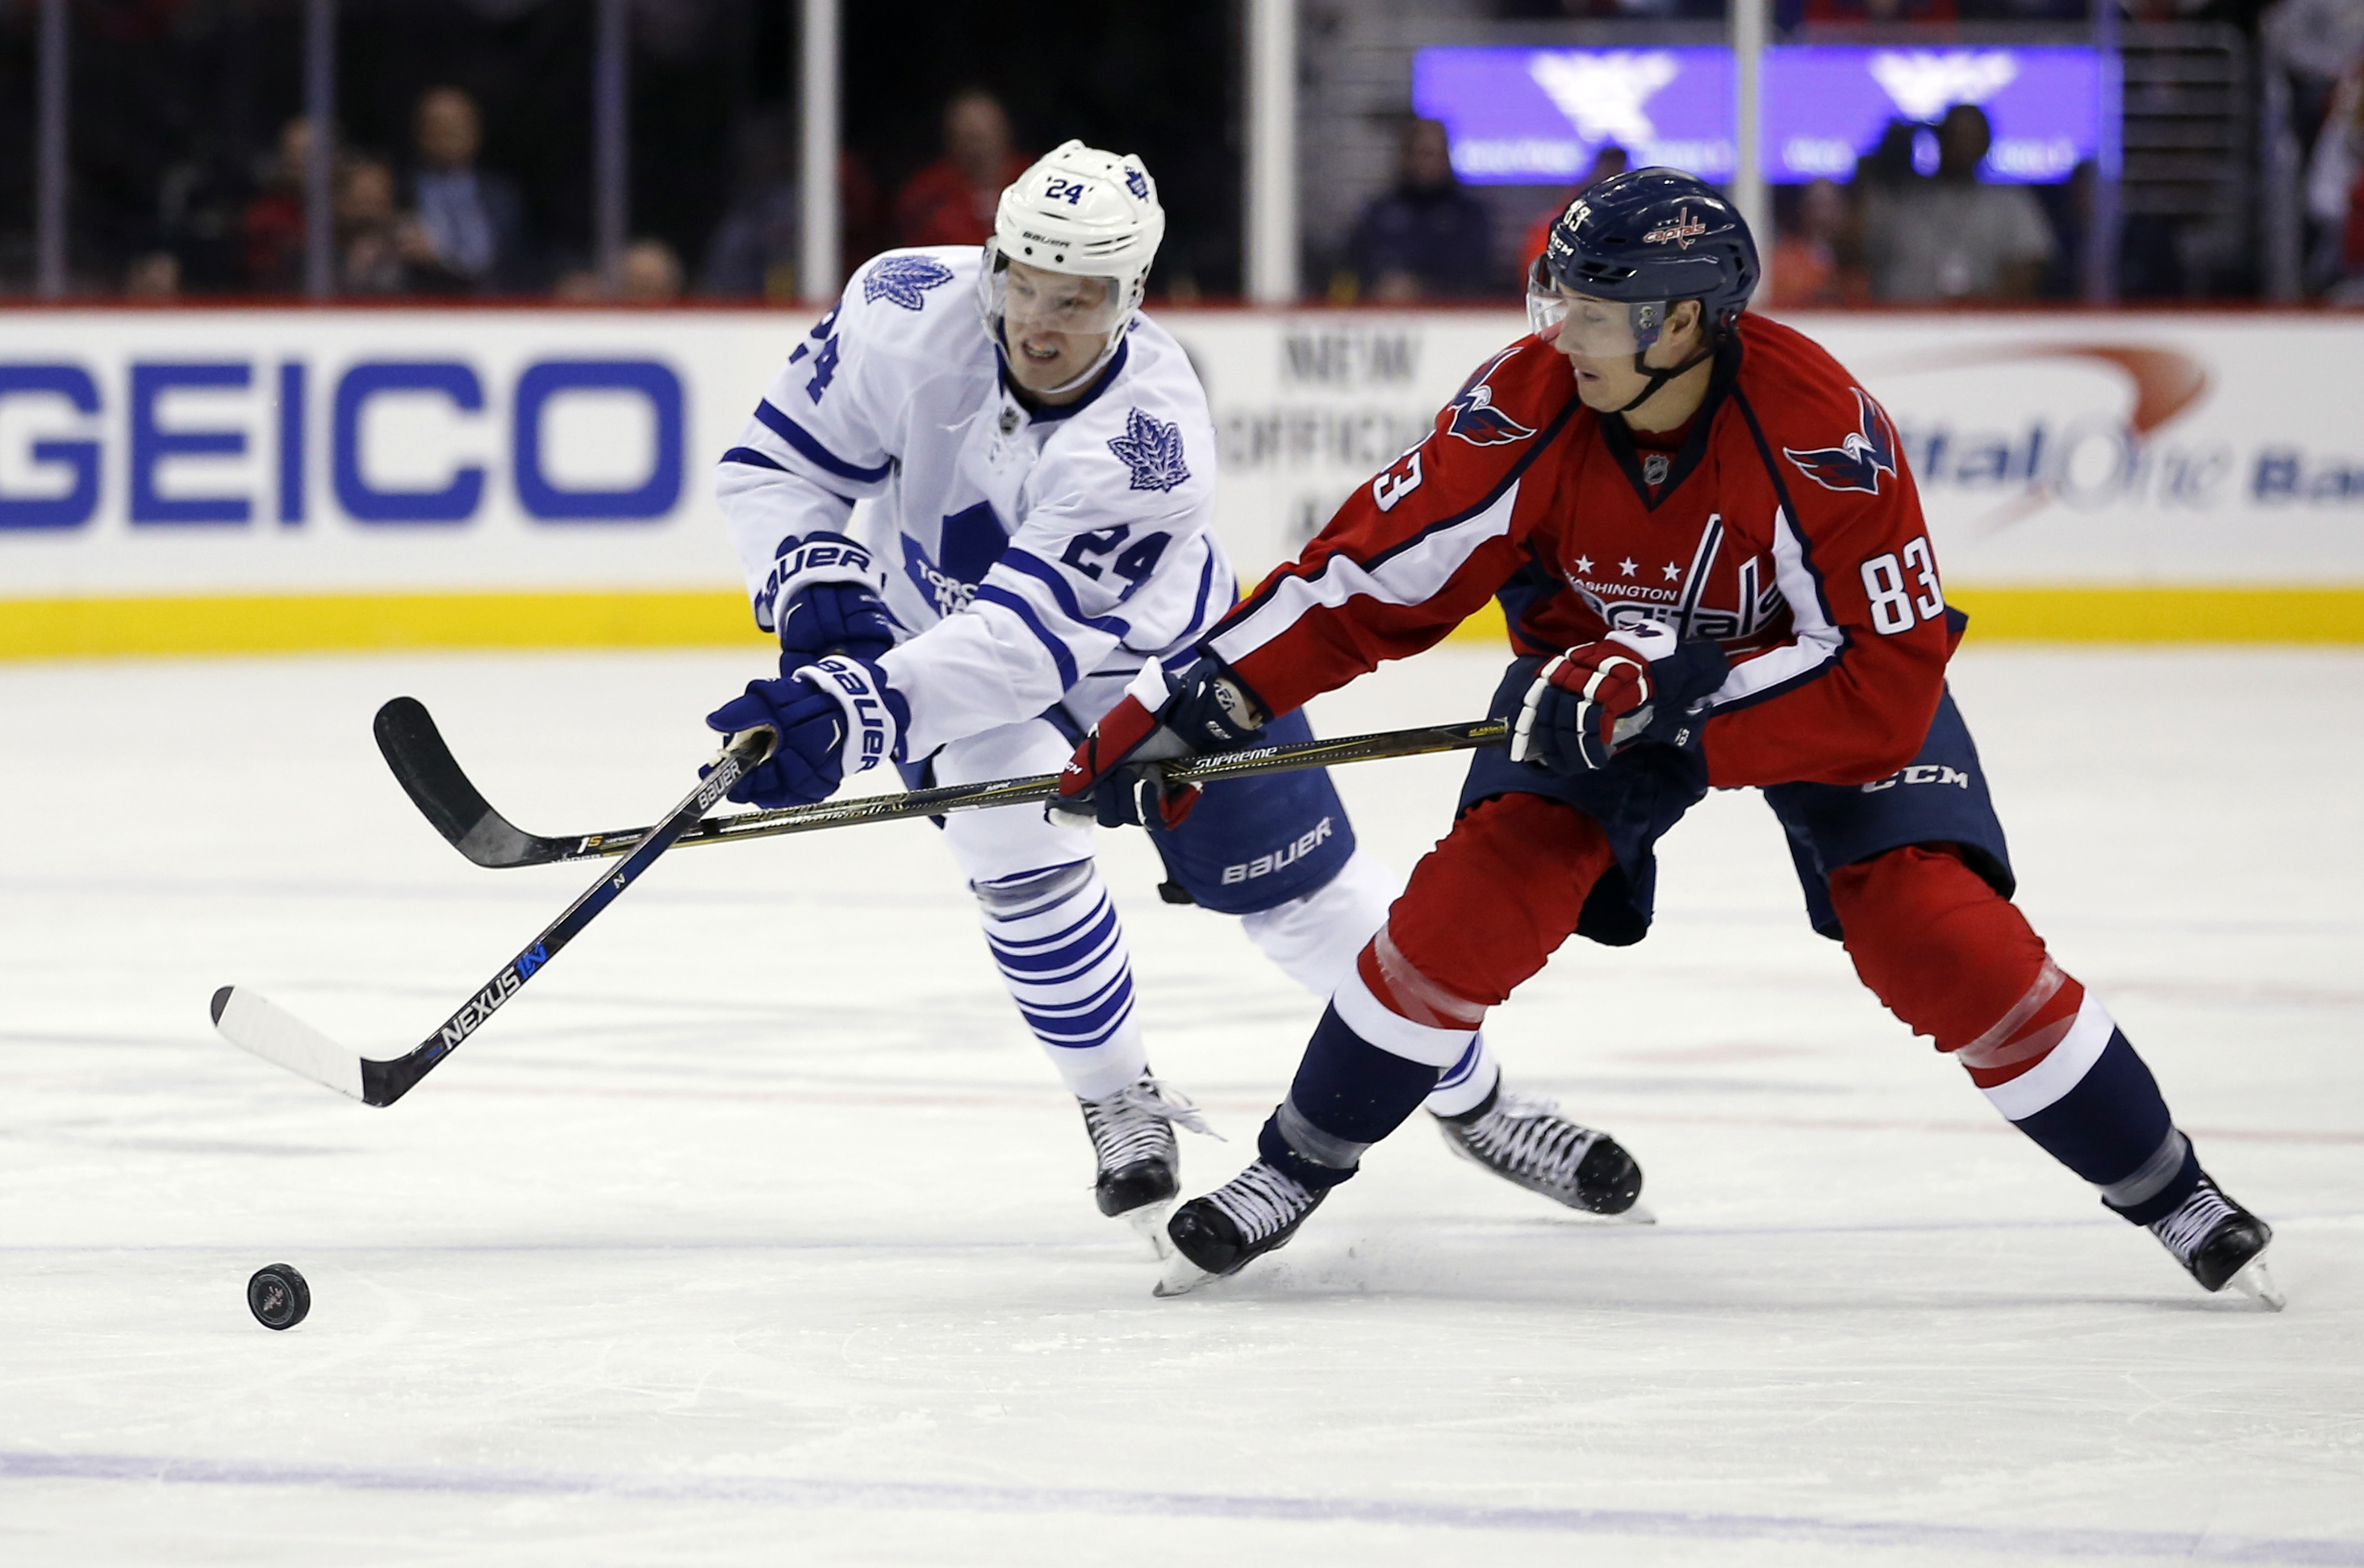 Toronto Maple Leafs center Peter Holland (24) and Washington Capitals center Jay Beagle (83) battle for the puck in the second period of an NHL hockey game, Wednesday, March 2, 2016, in Washington. (AP Photo/Alex Brandon)